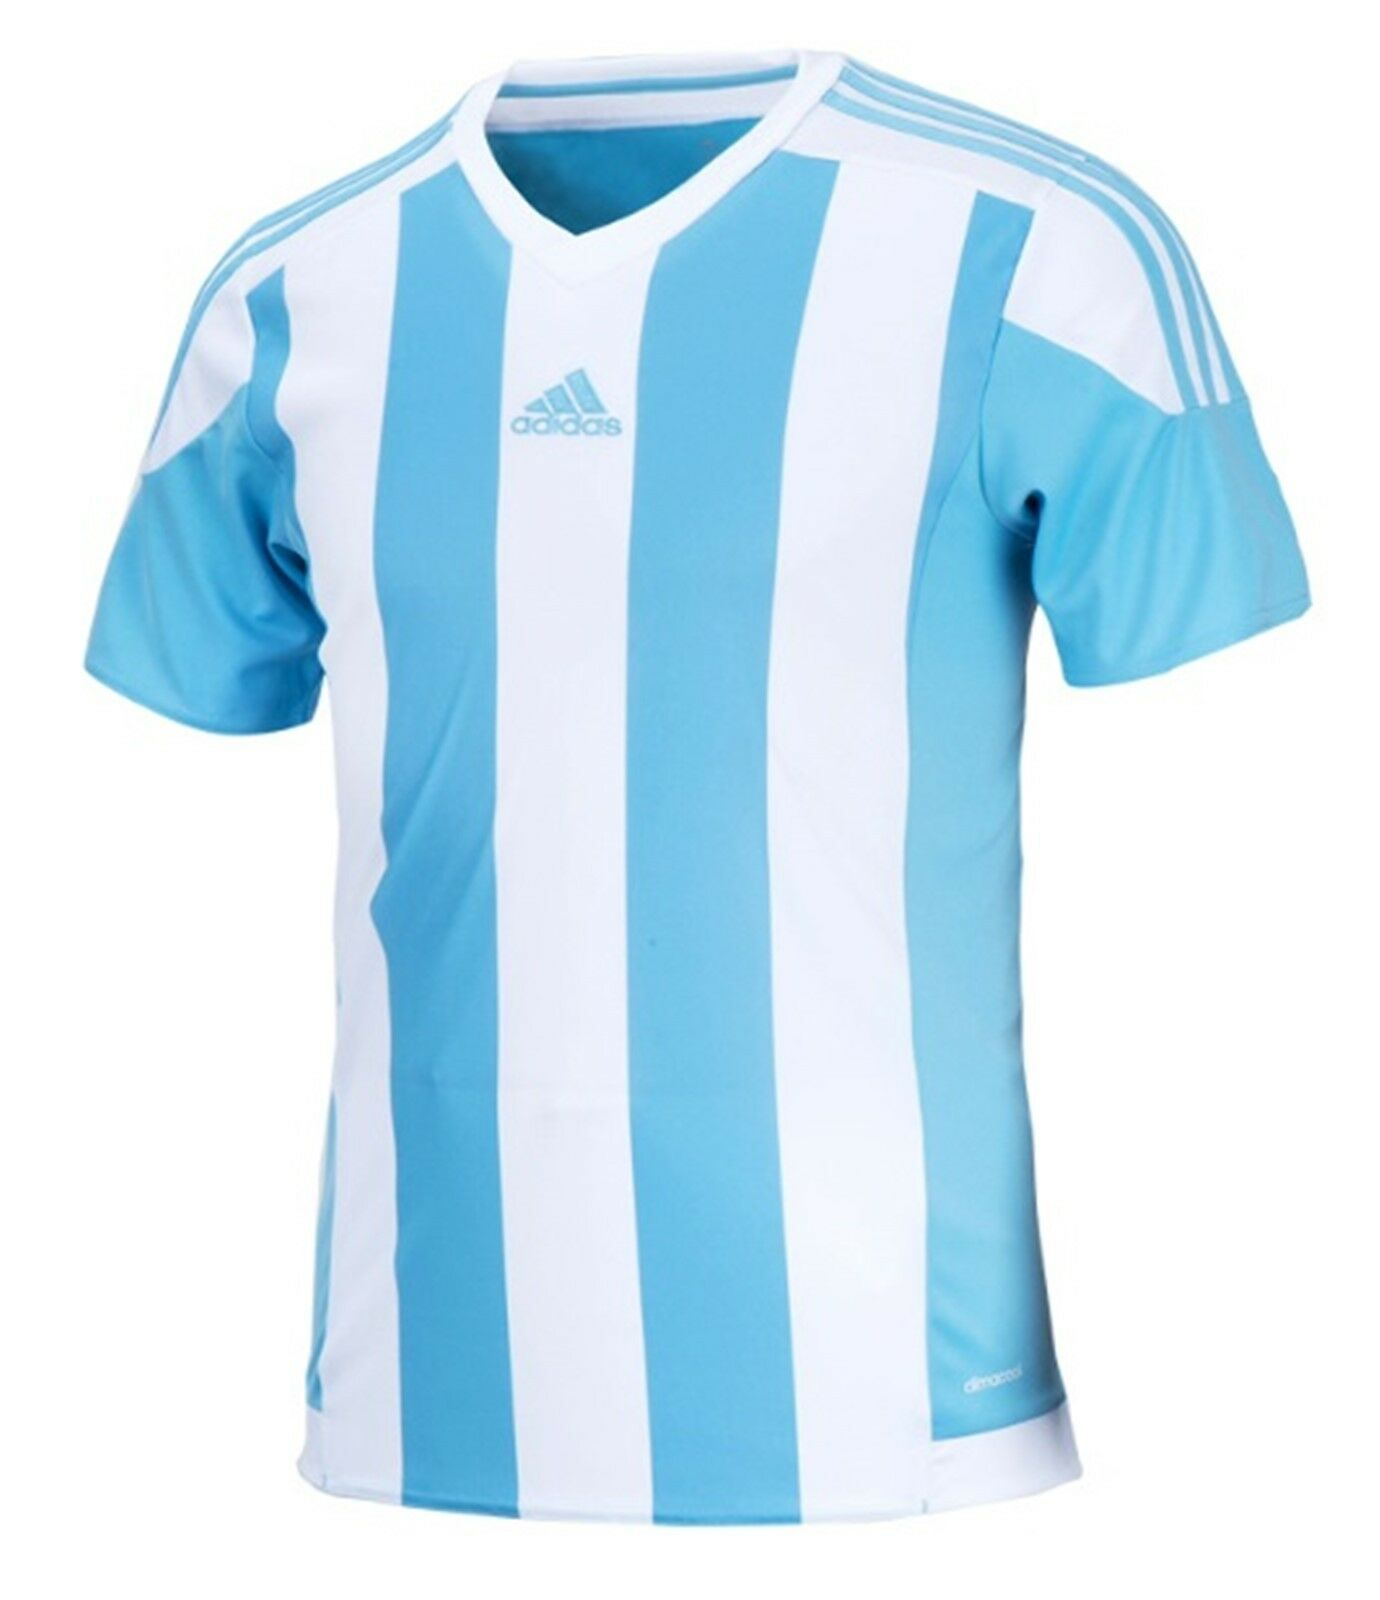 Adidas Men Stripe 15 Climacool S S Shirts Skybluee Soccer Top Tee Jersey S16139